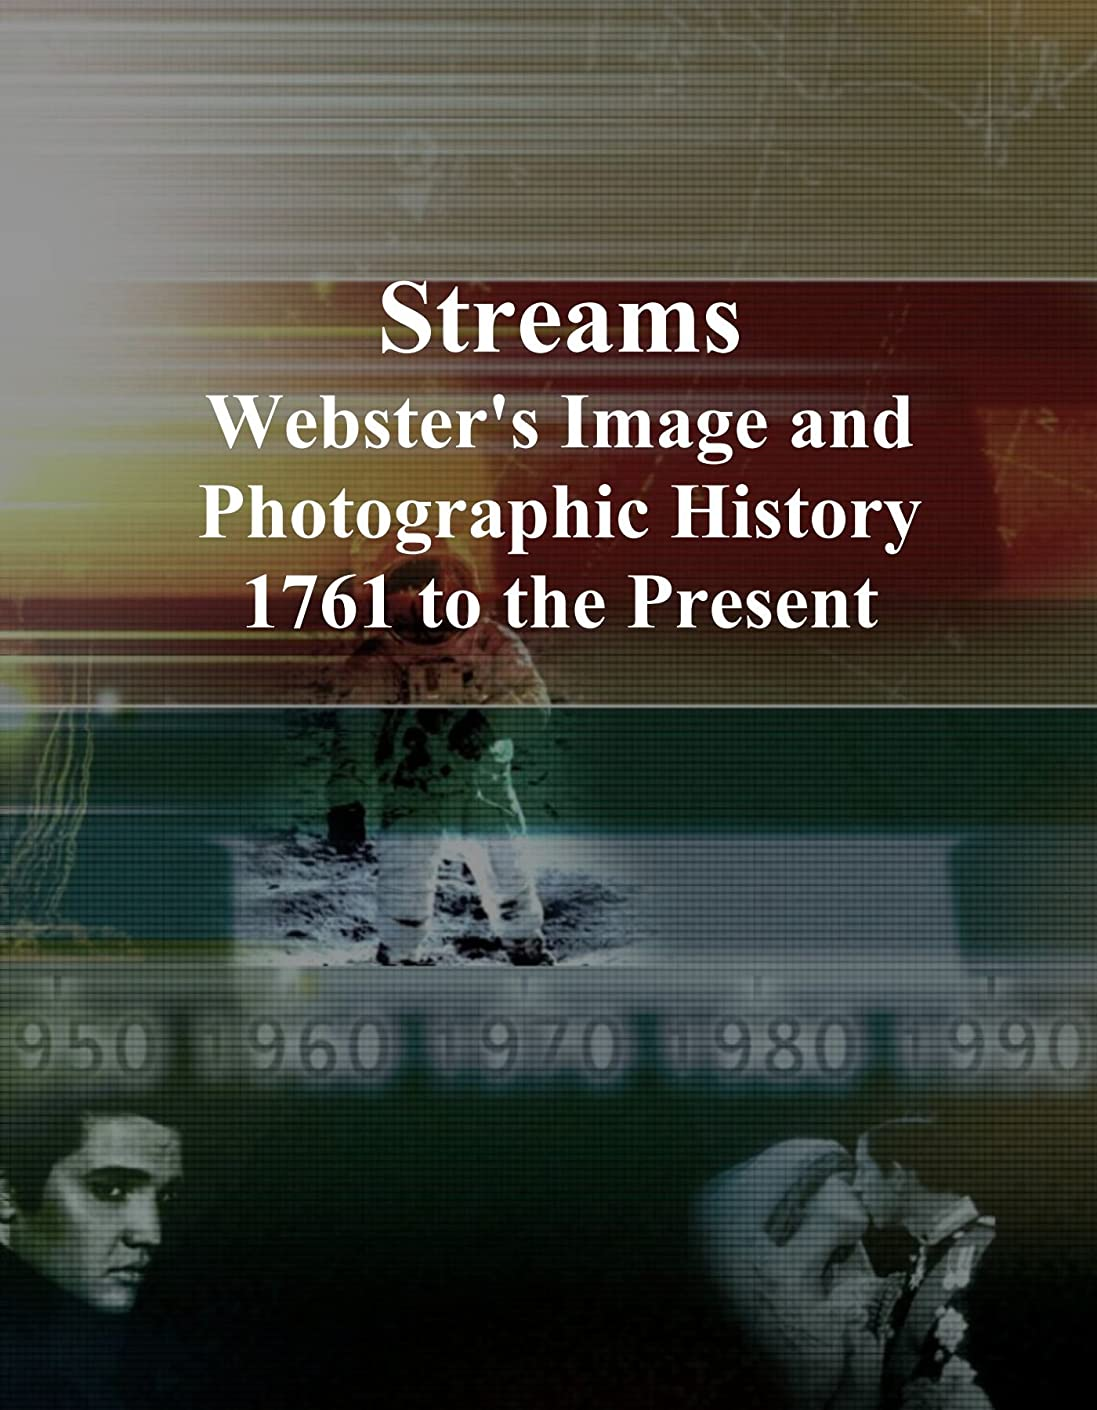 呼び起こす戻る承知しましたStreams: Webster's Image and Photographic History, 1761 to the Present